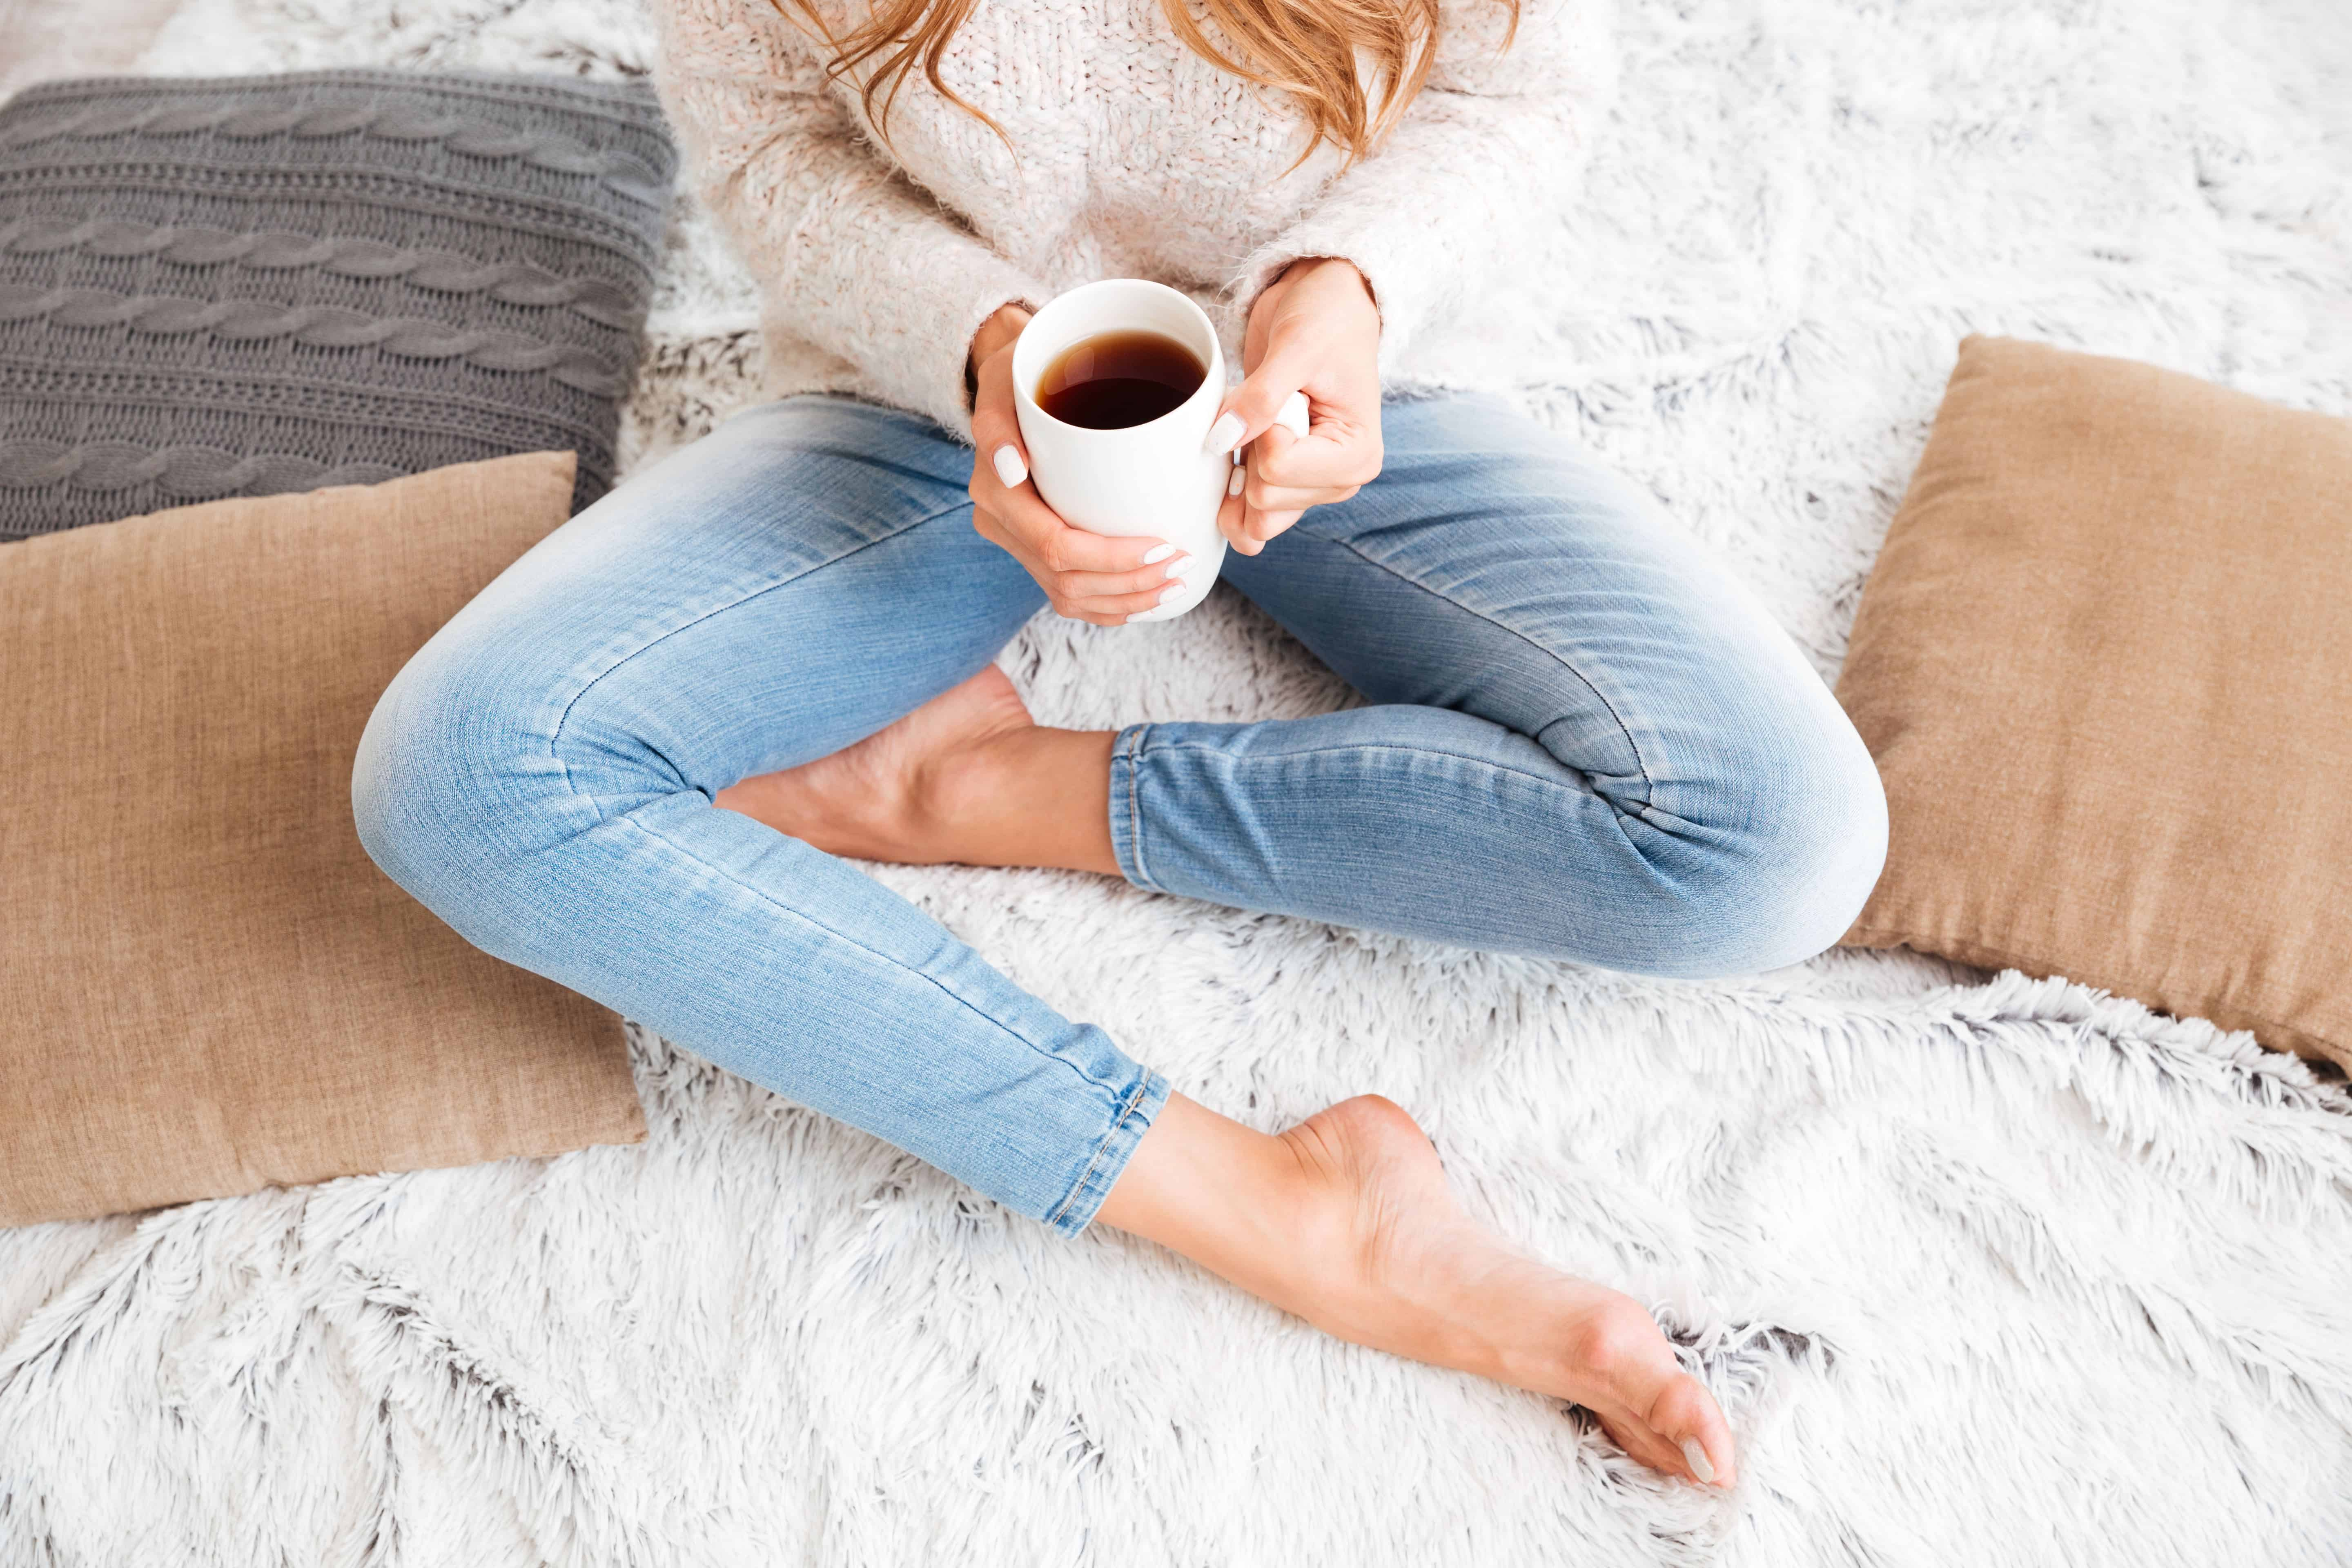 woman in sweater and jeans holding hot tea sitting